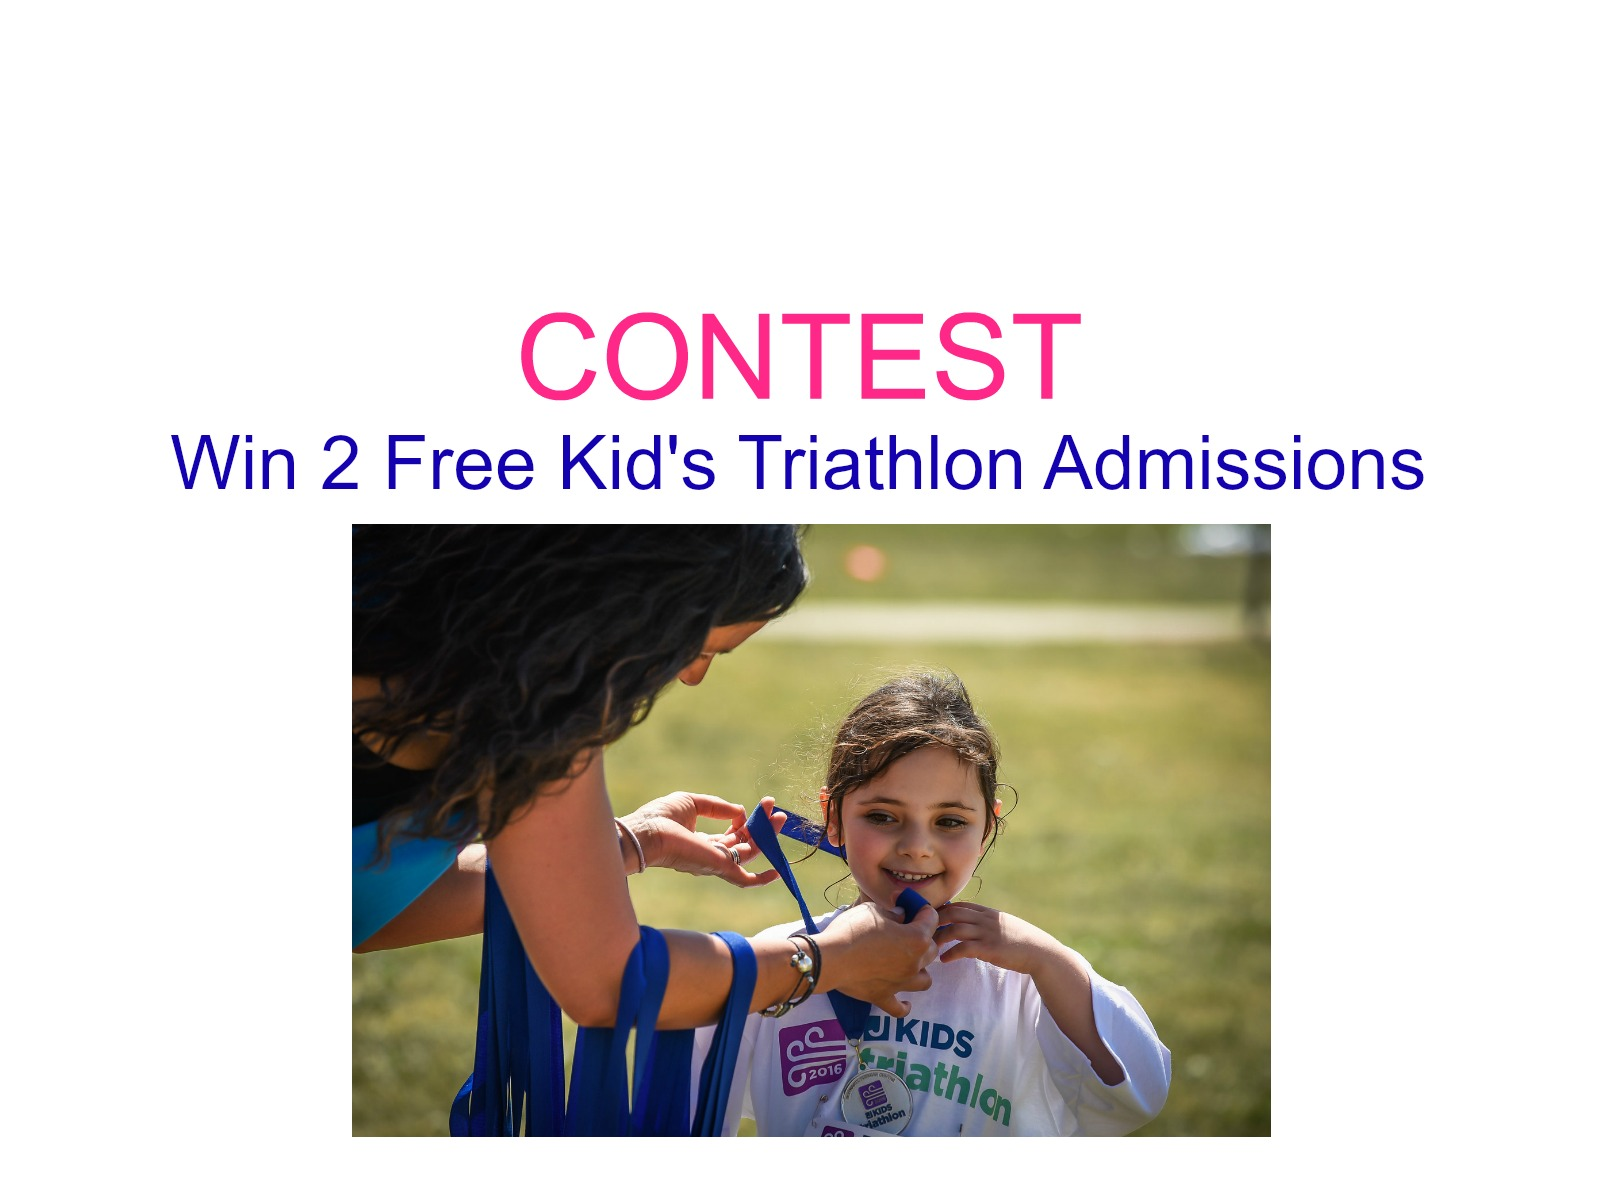 Contest: Win 2 FREE Kid's Triathlon Admissions